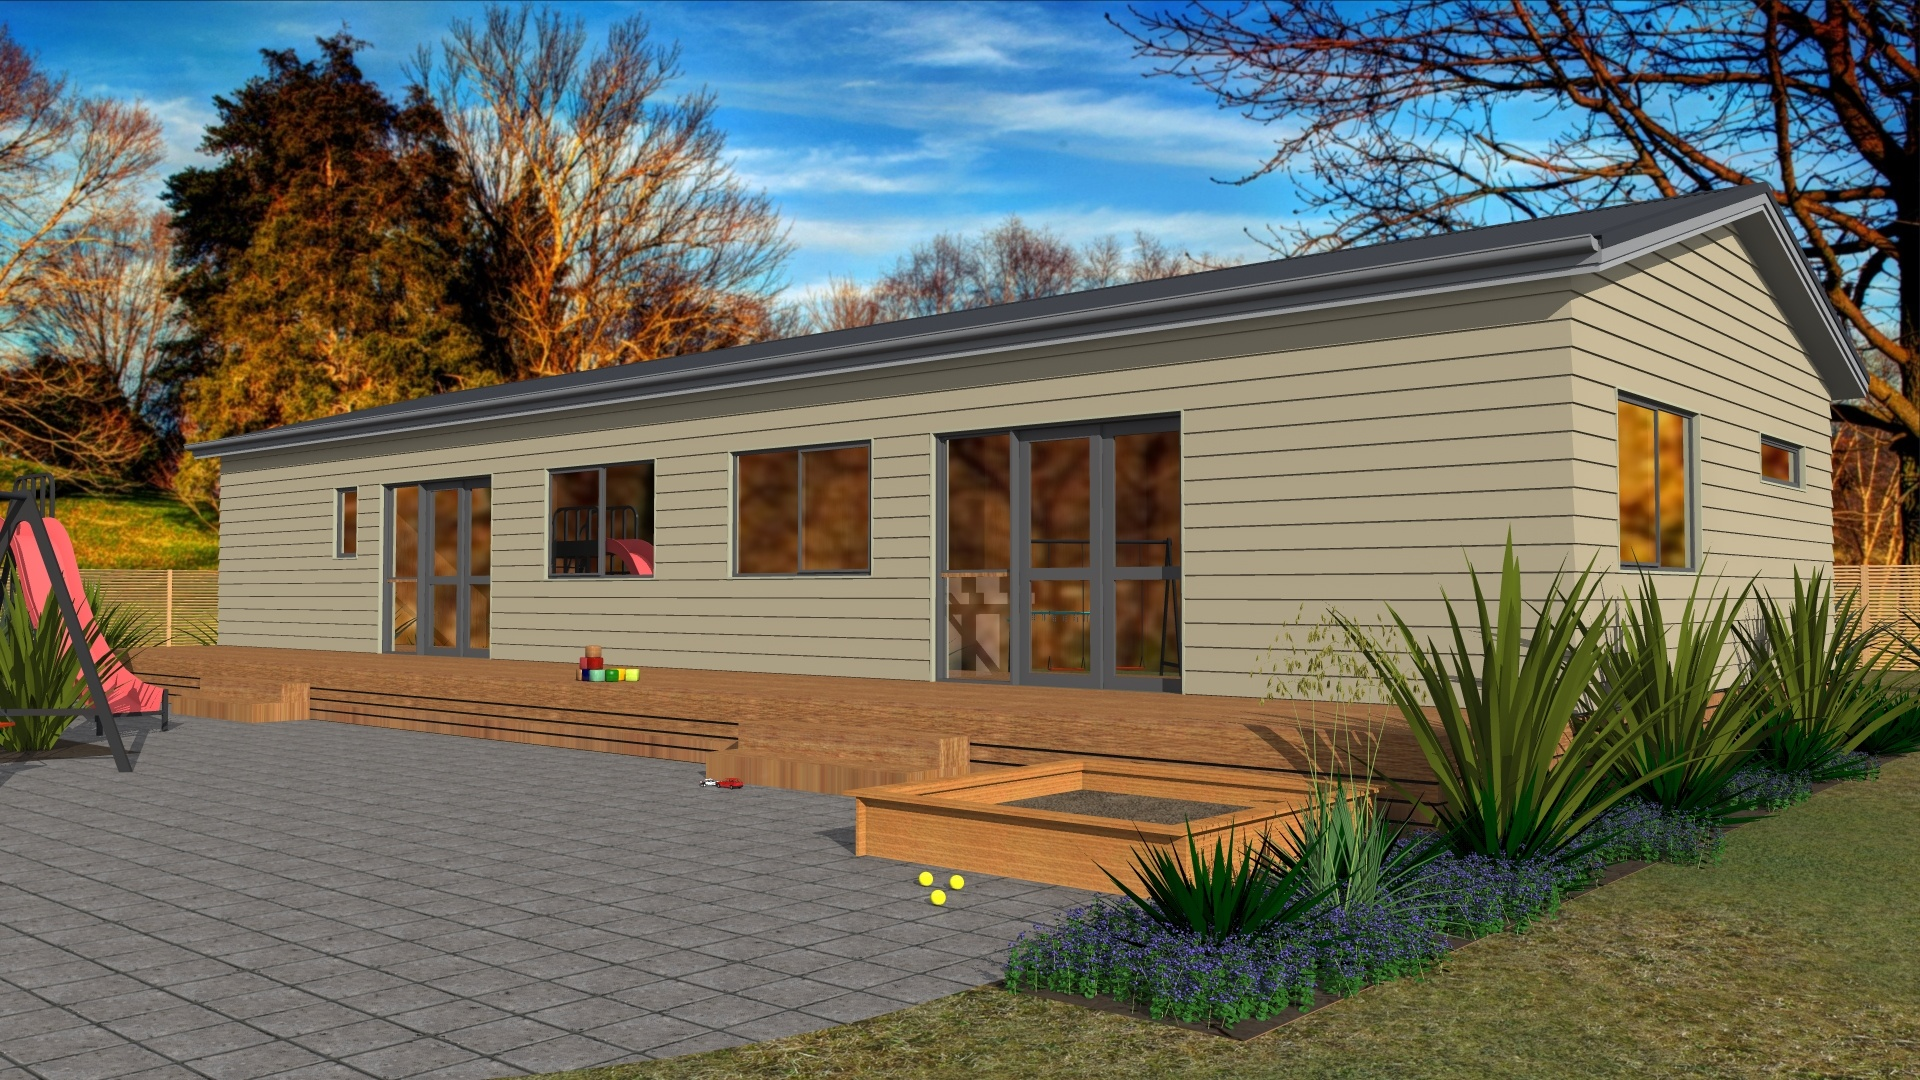 Prefabricated commercial preschool early childhood centre